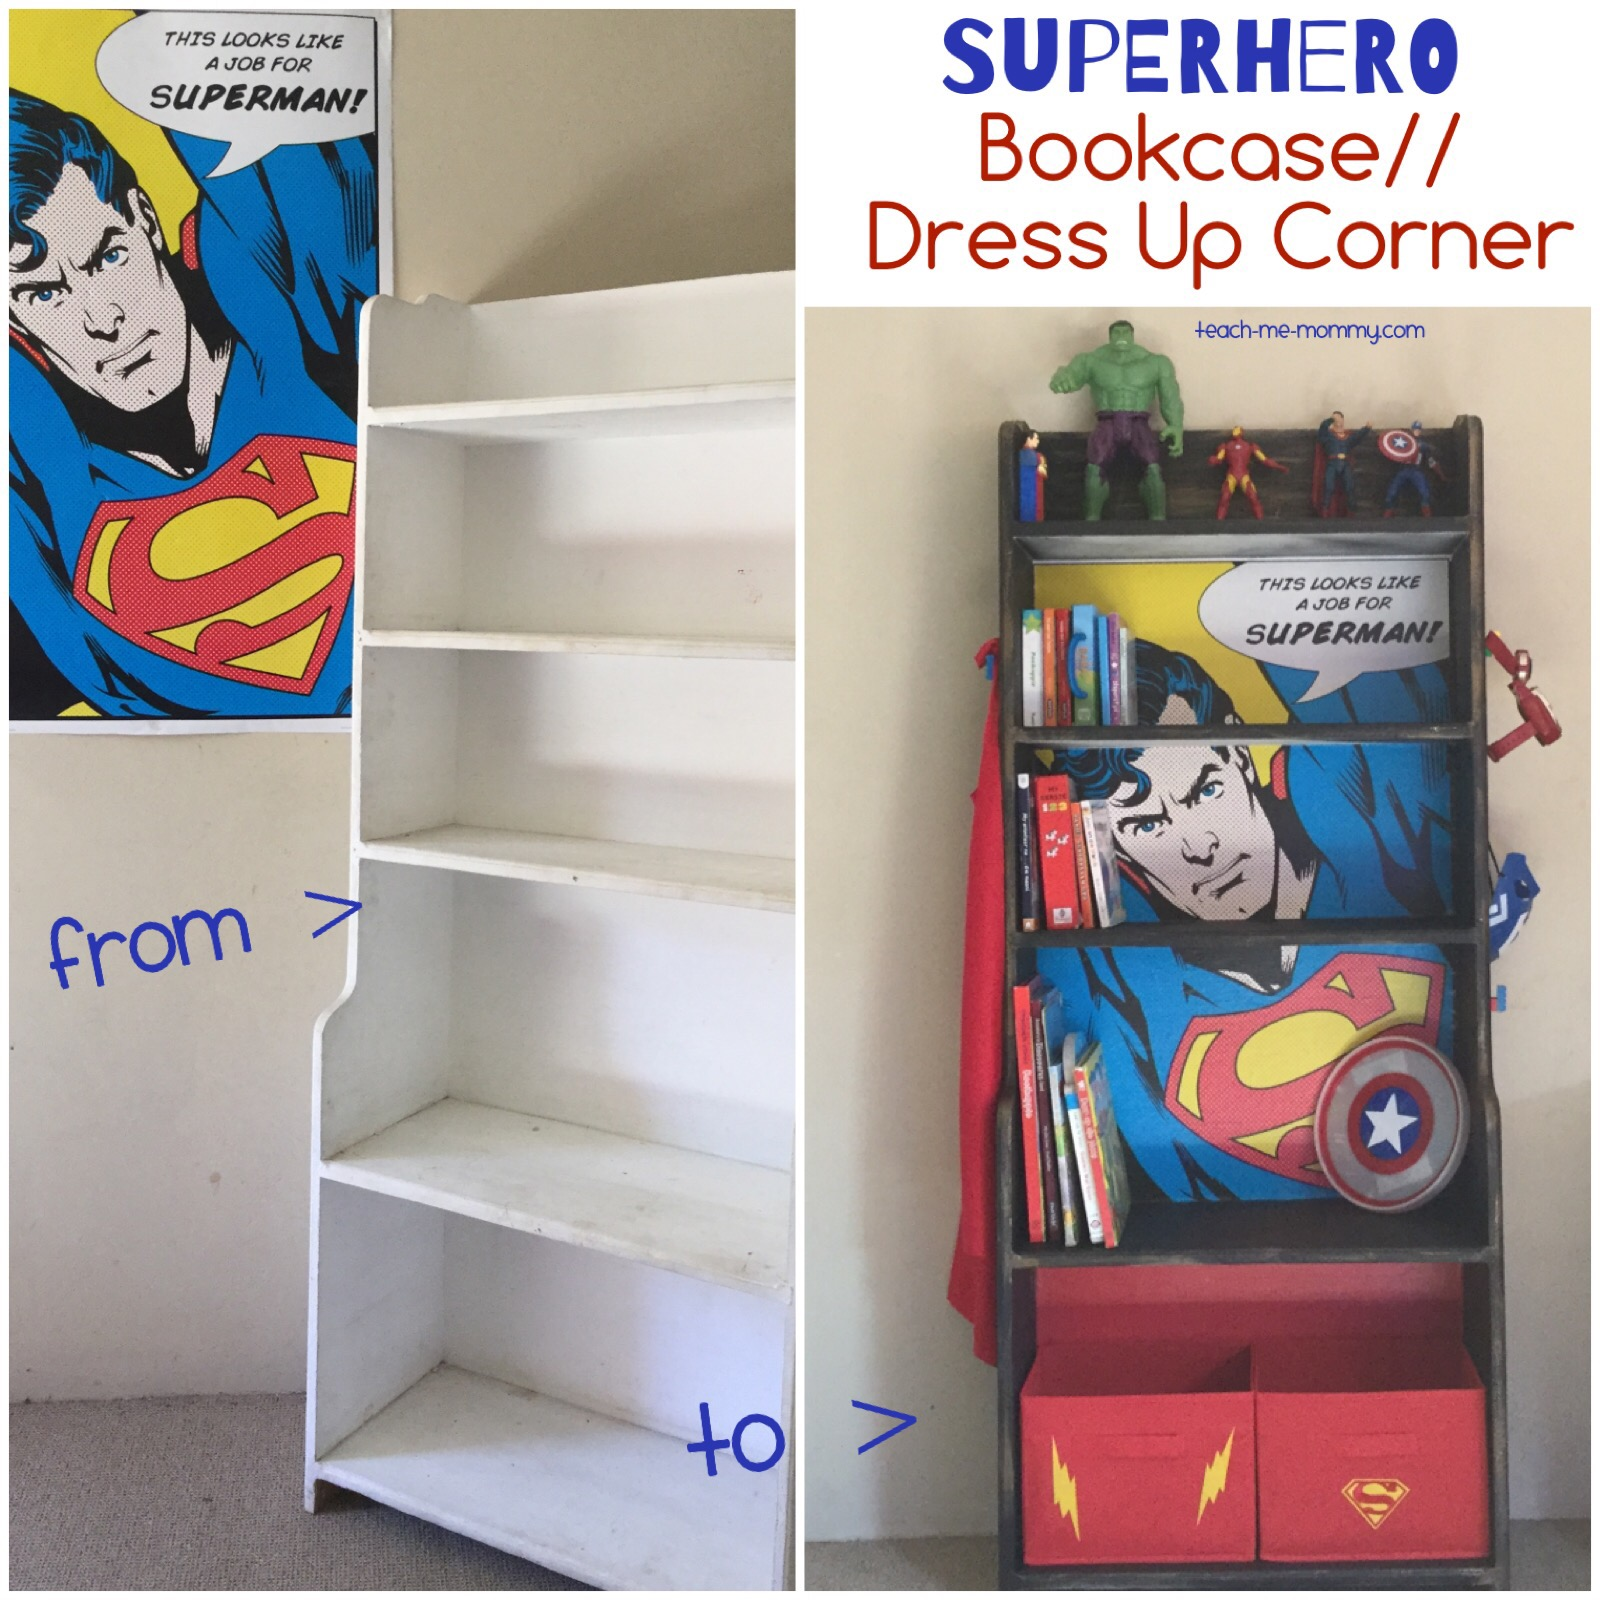 Superhero Bookcase Dress Up Corner